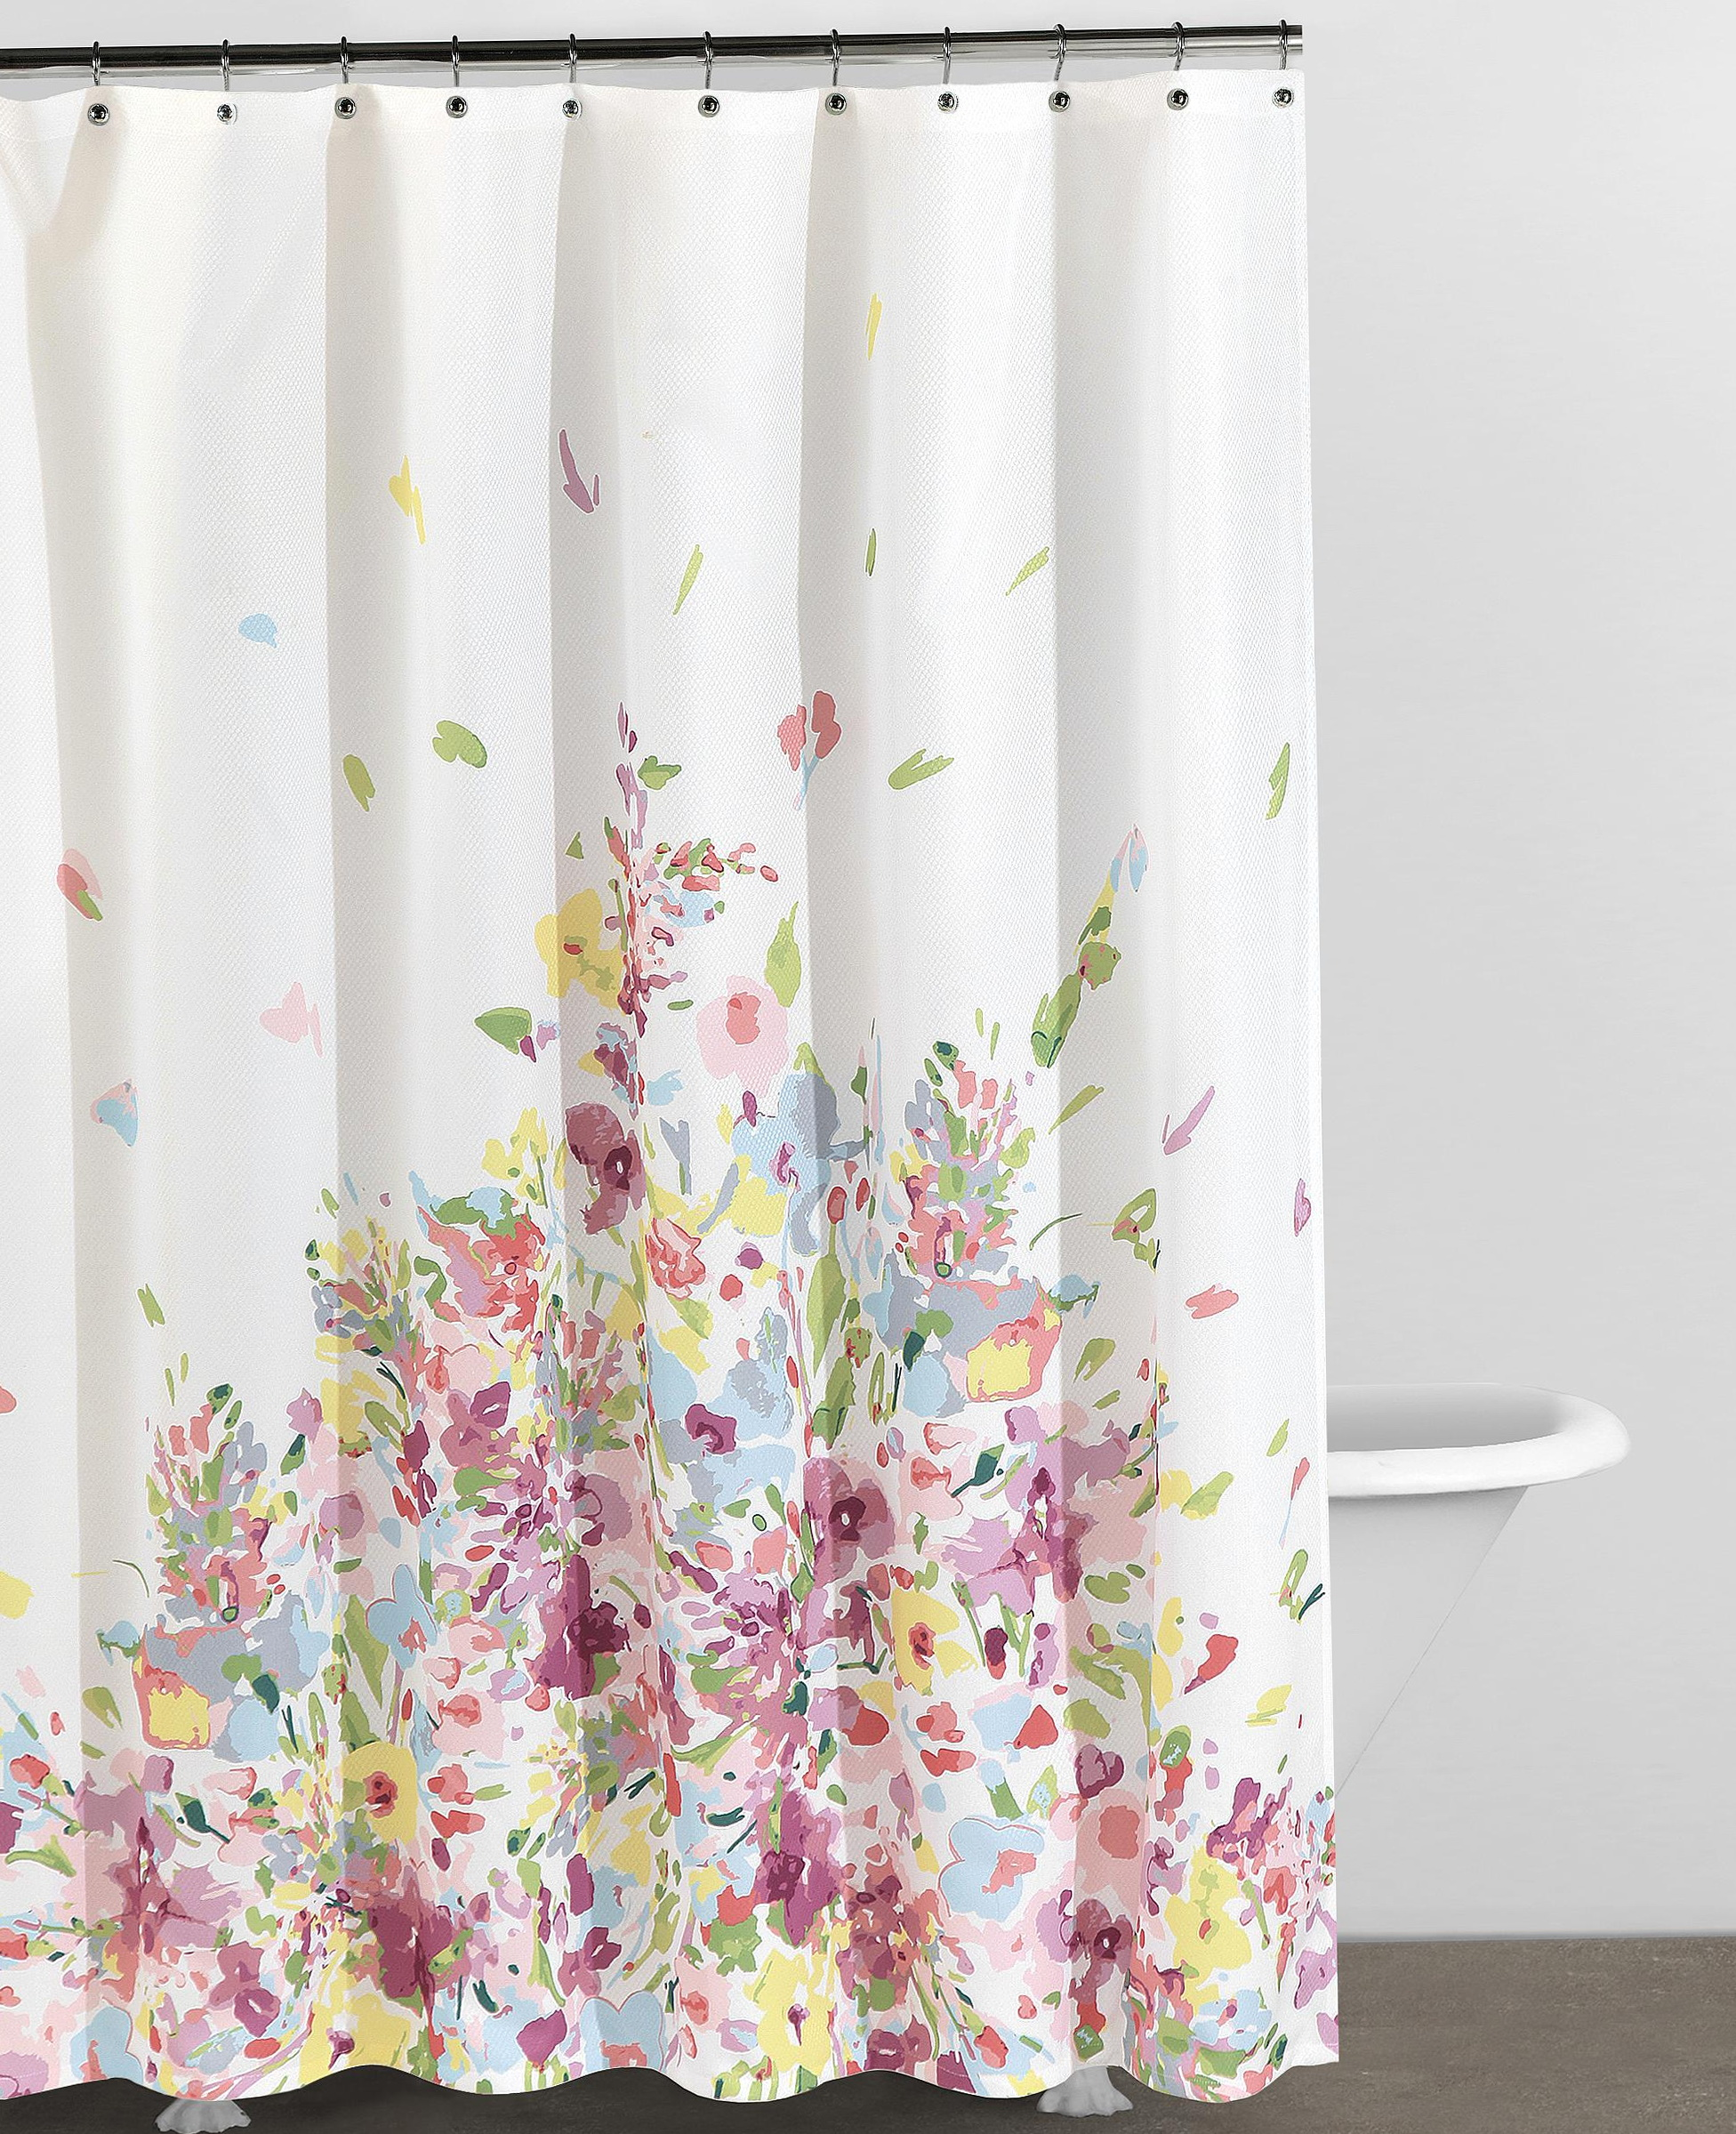 Floral Shower Curtains Bed Bath And Beyond | Home Design Ideas